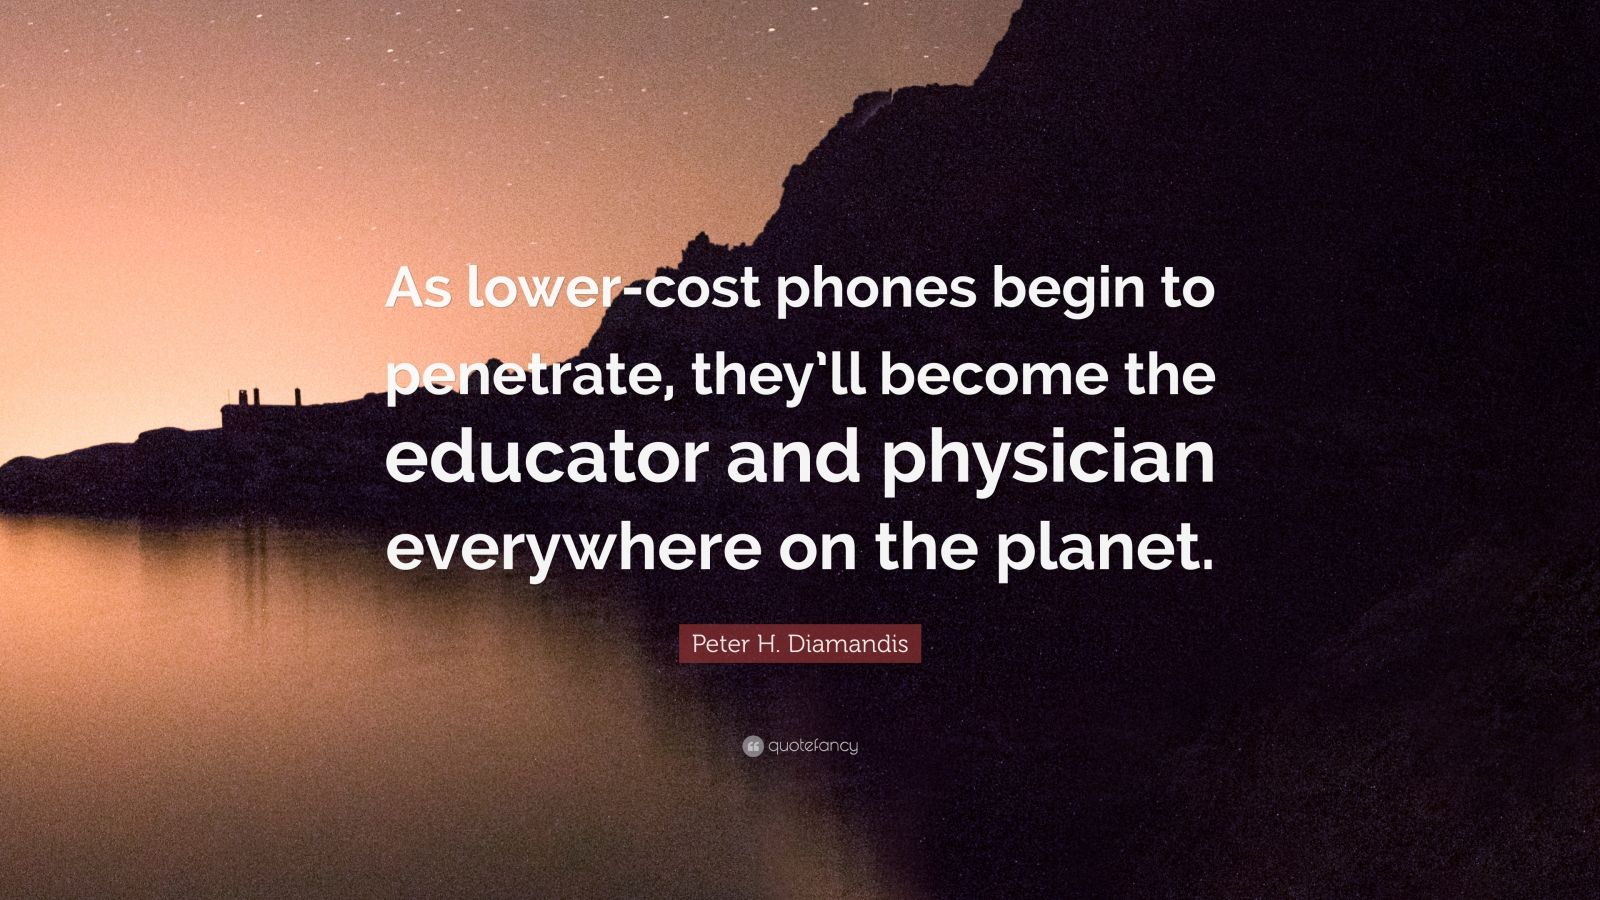 """Peter H. Diamandis Quote: """"As lower-cost phones begin to penetrate, they'll become the educator and physician everywhere on the planet."""""""